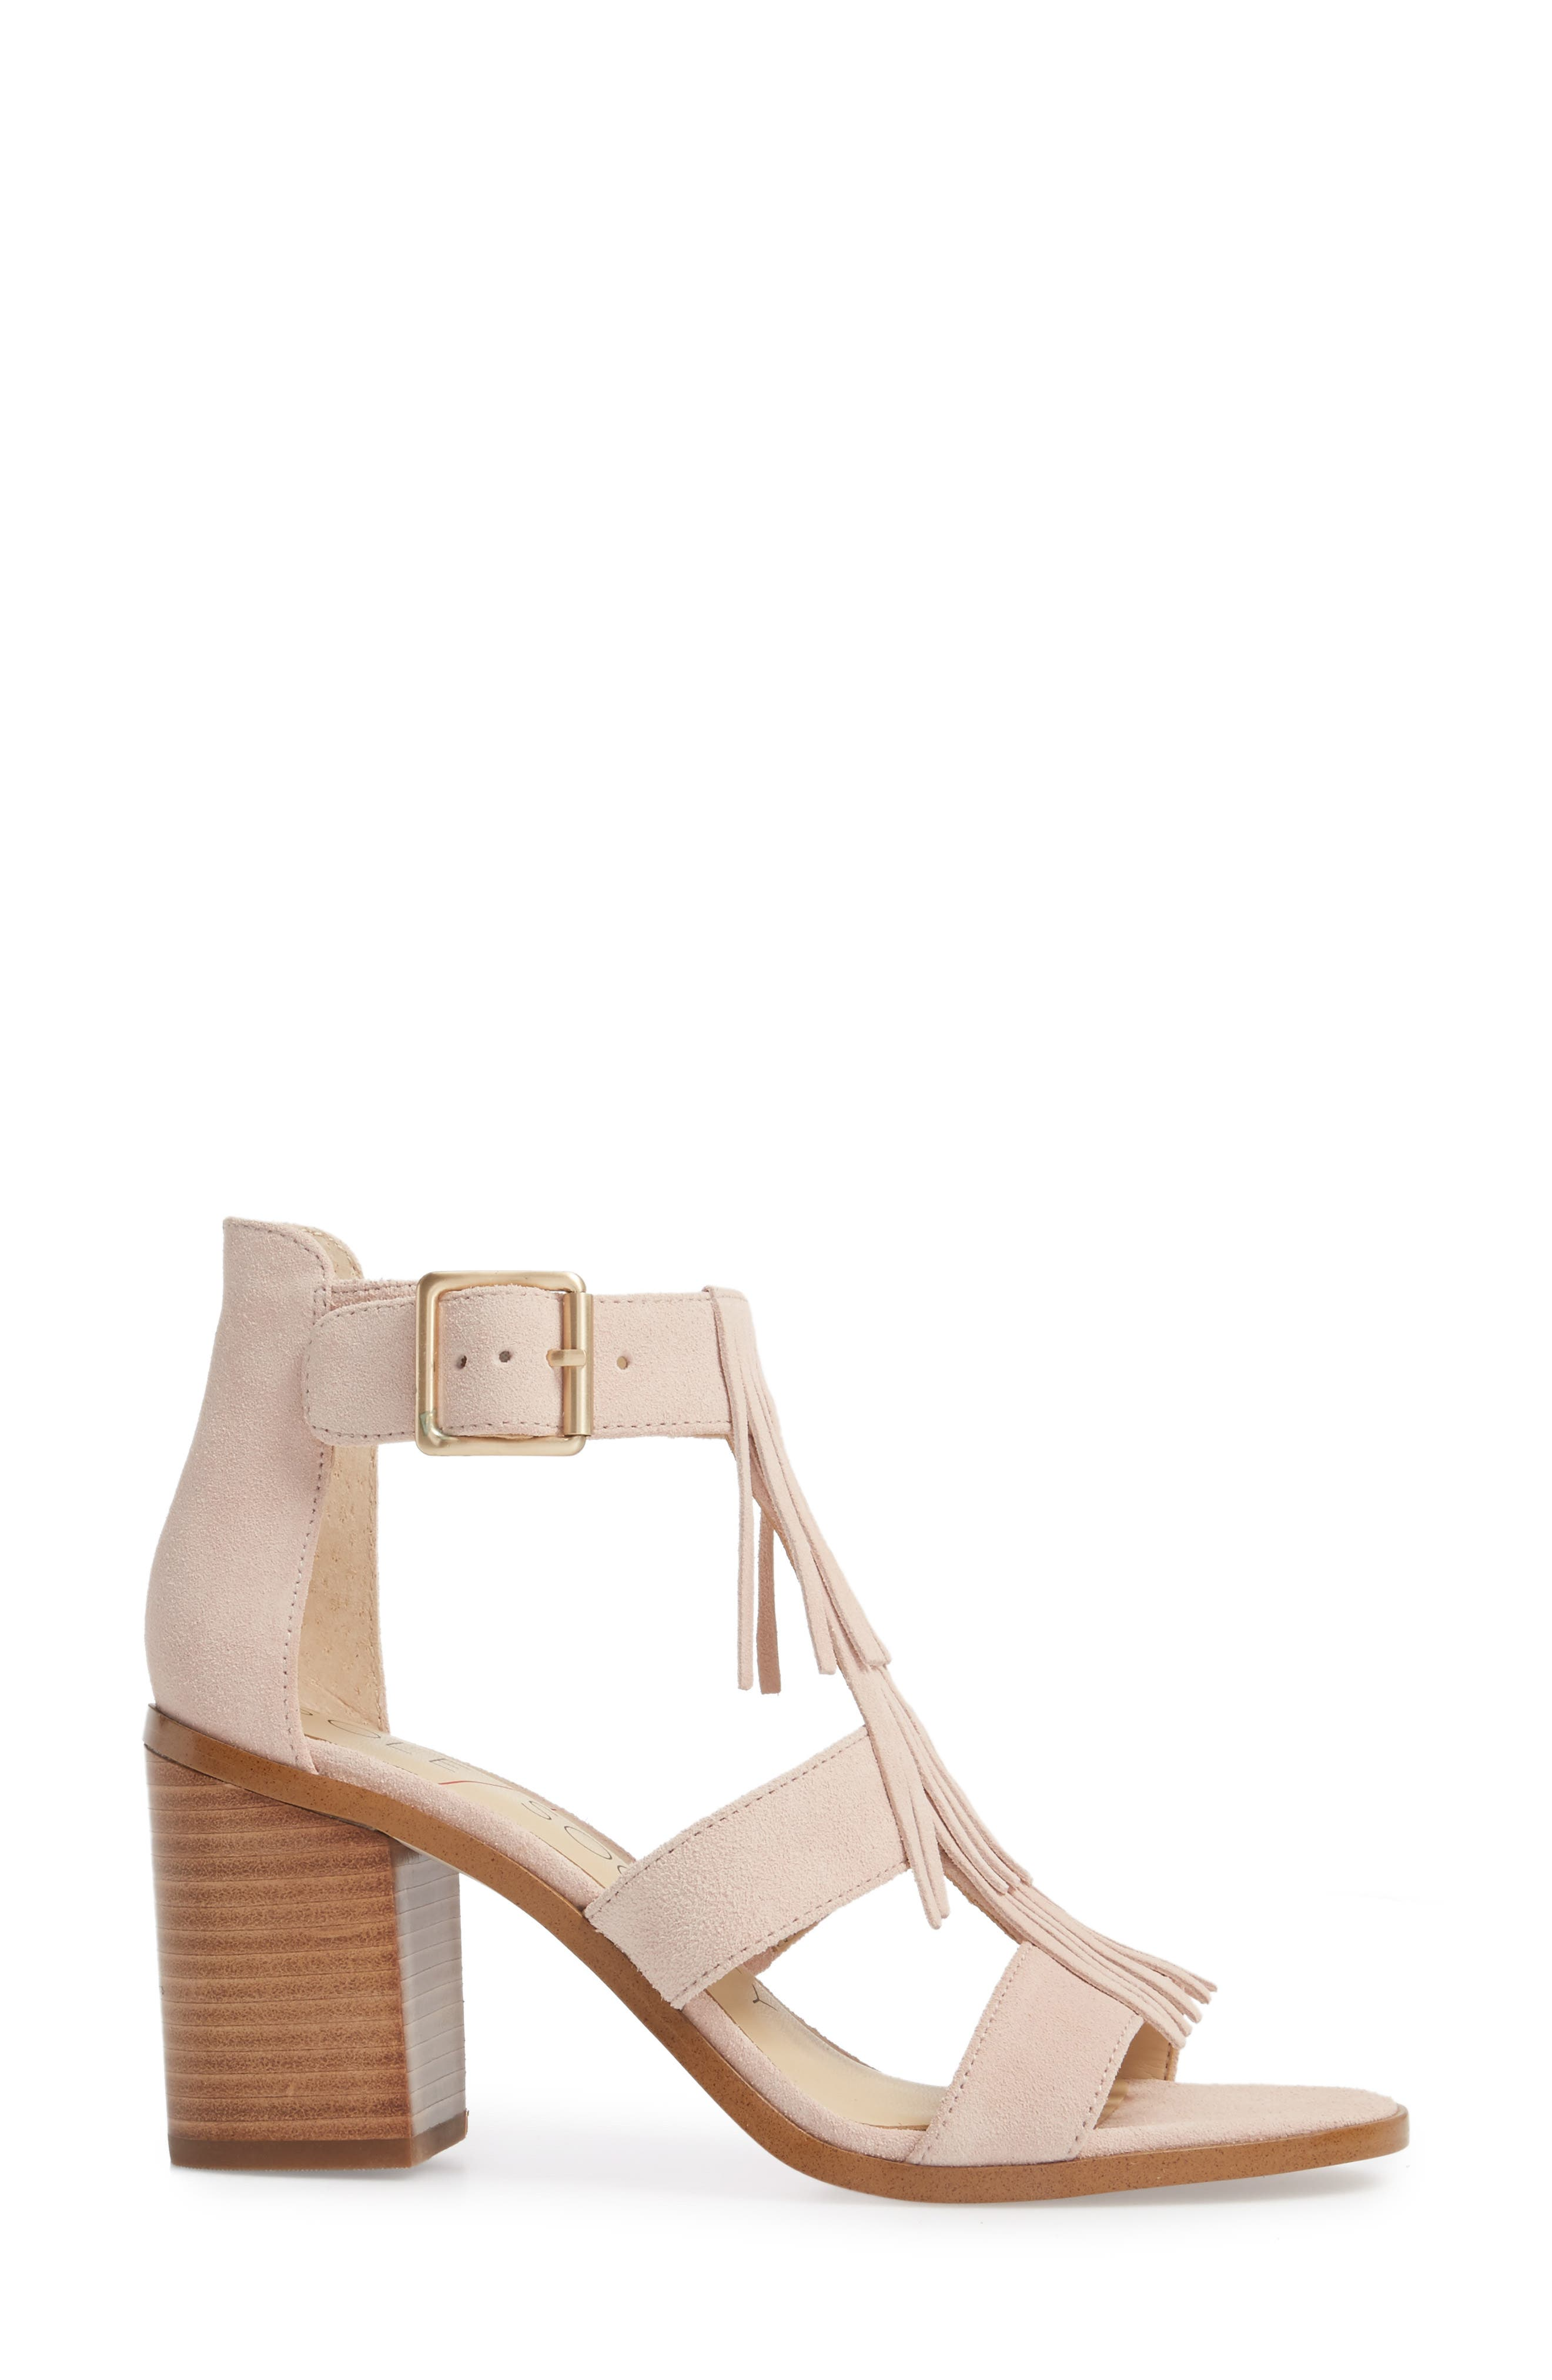 'Delilah' Fringe Sandal,                             Alternate thumbnail 19, color,